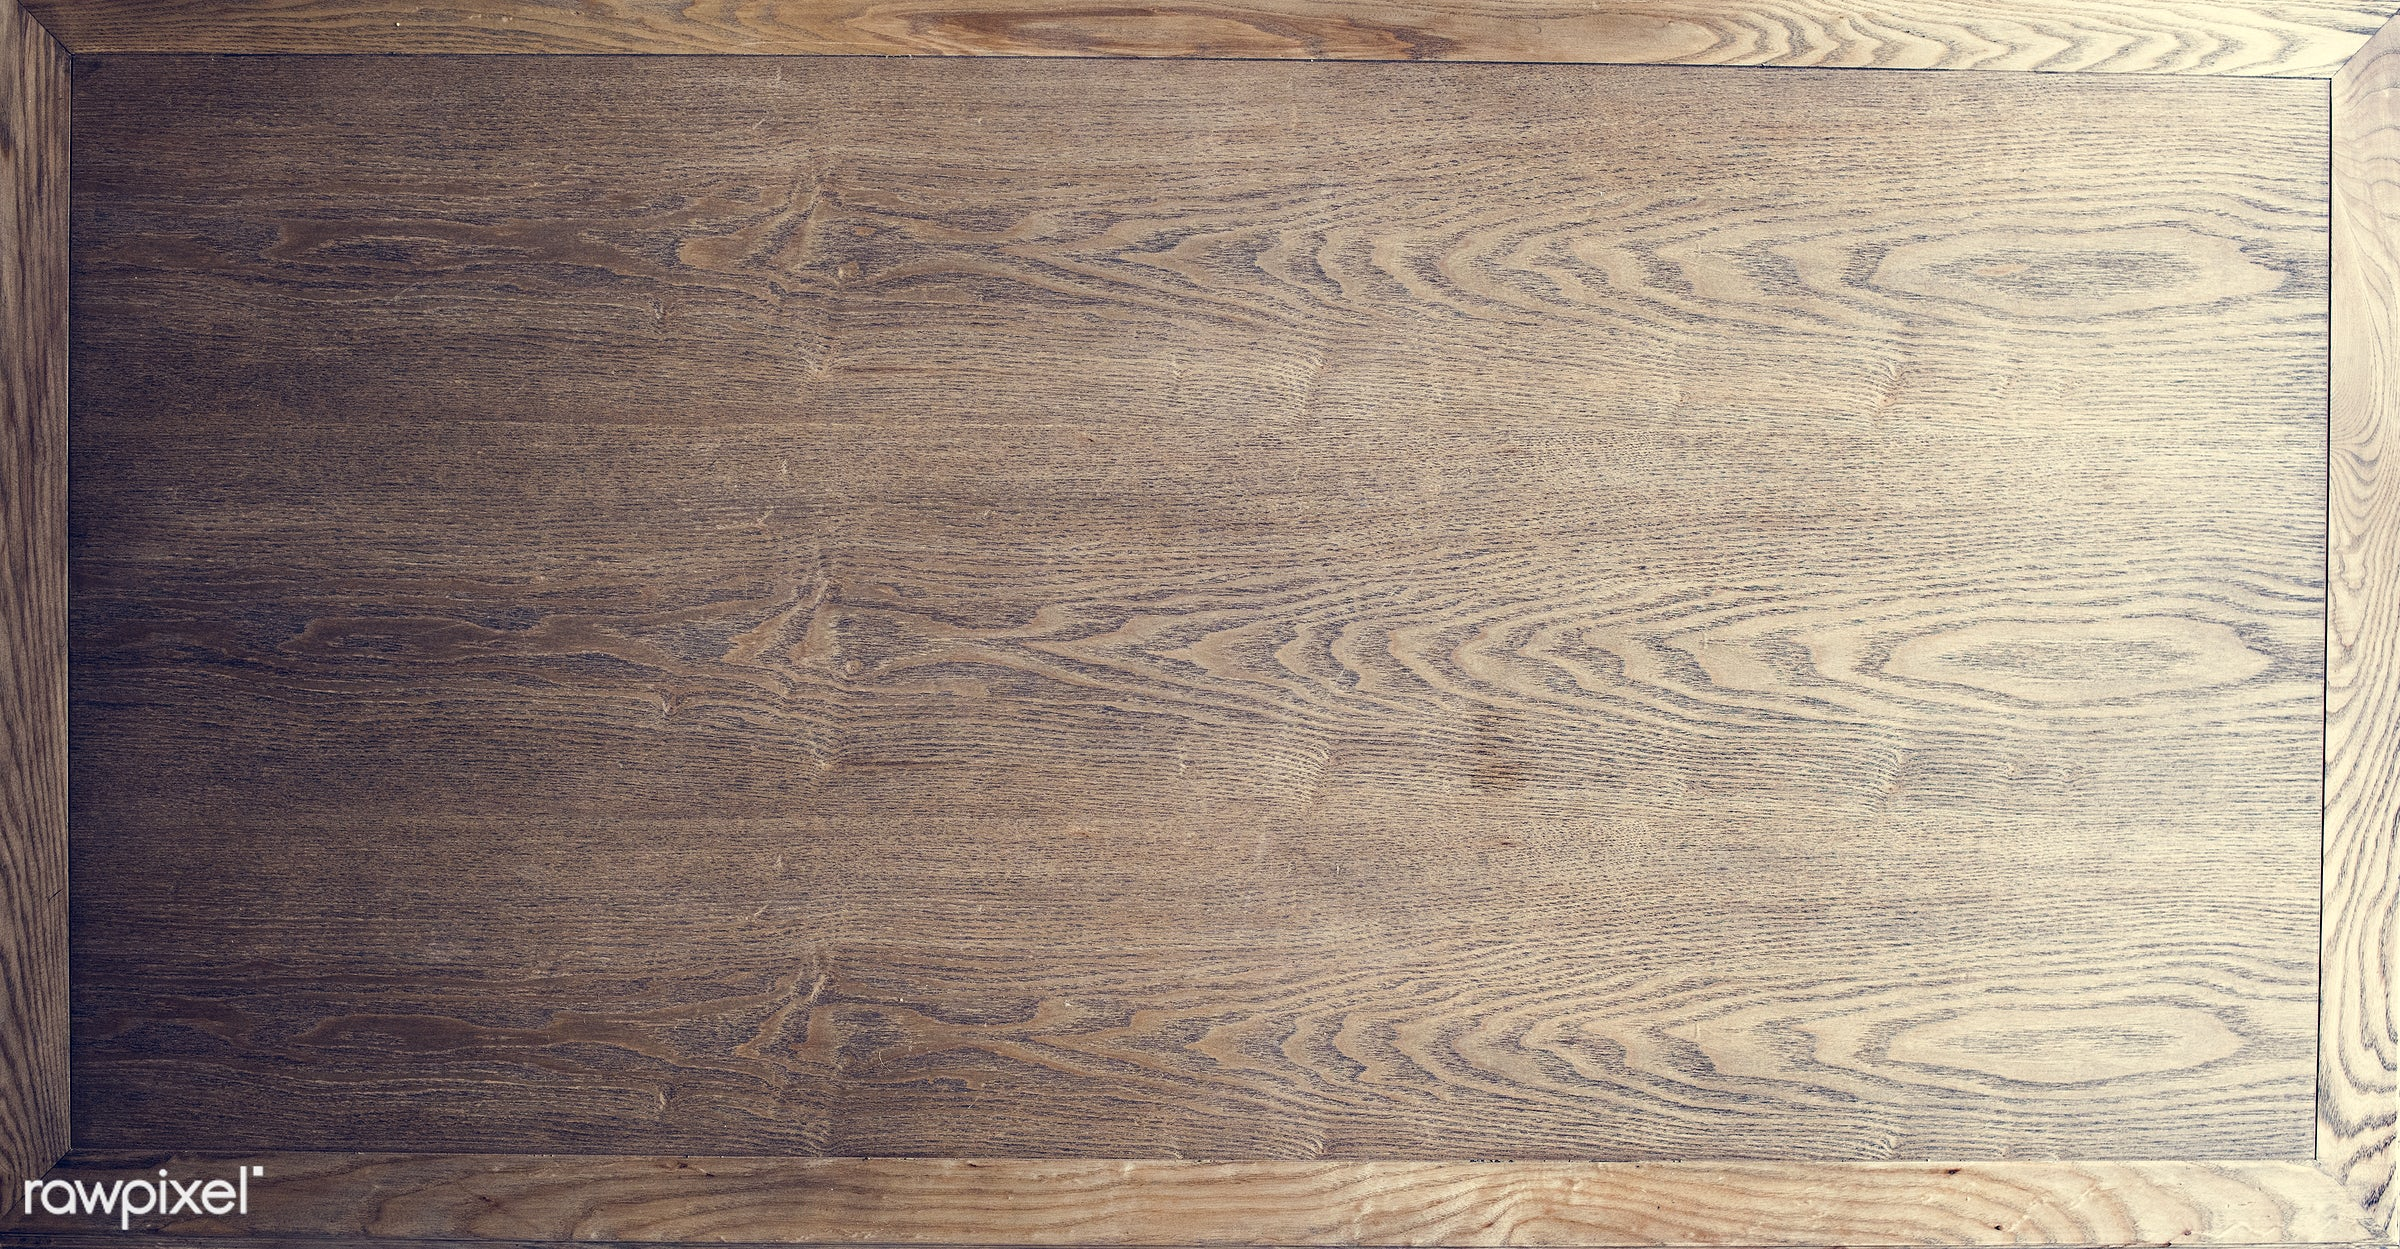 old, hardwood, surface, decorative, wood, exterior, carpentry, grungy, plank, retro, desk, space, furniture, decor, grunge,...